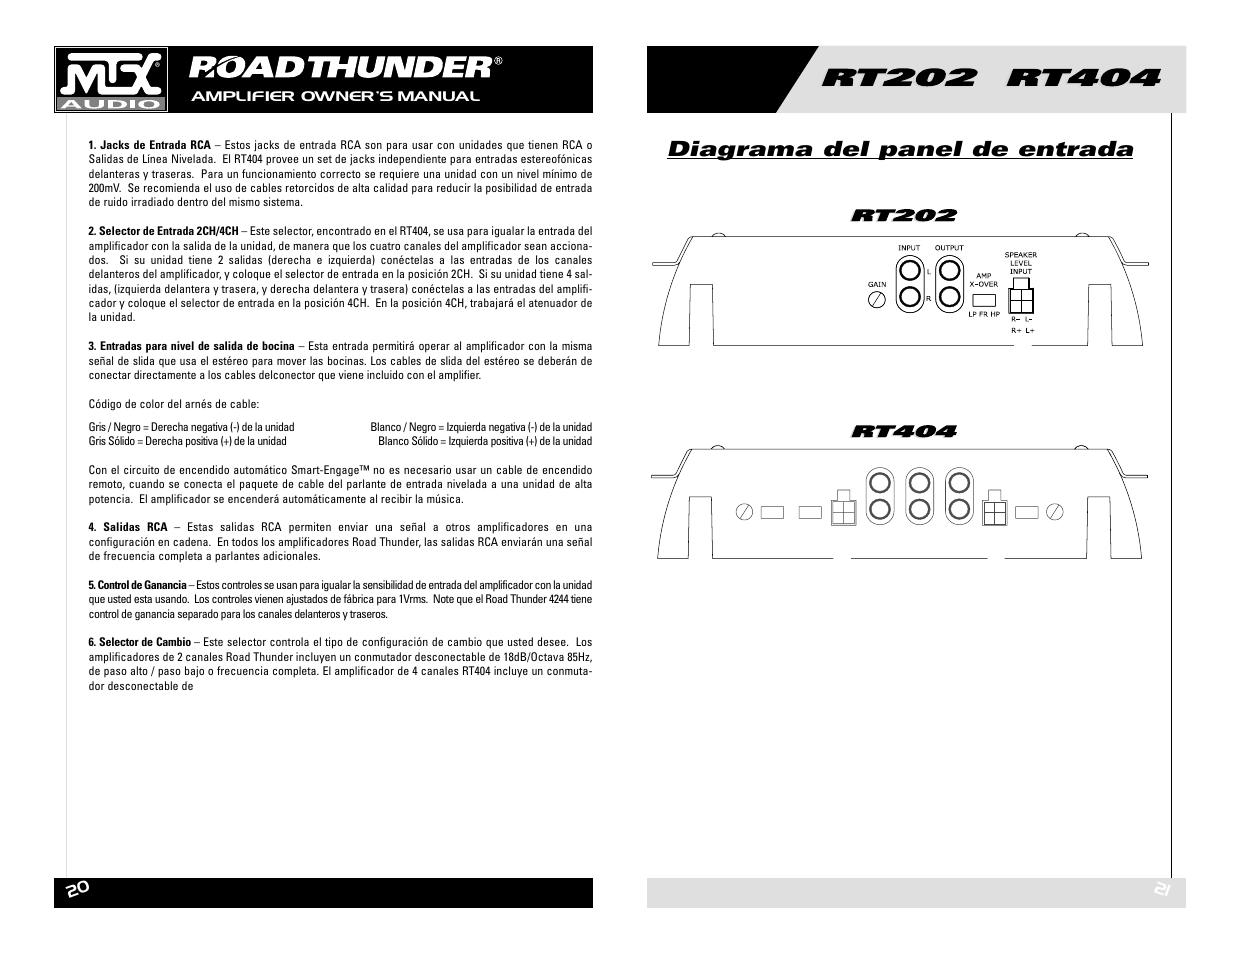 diagrama del panel de entrada mtx audio rt202 rt404 user manual rh manualsdir com MTX Thunder Speakers mtx thunder 4244 owners manual